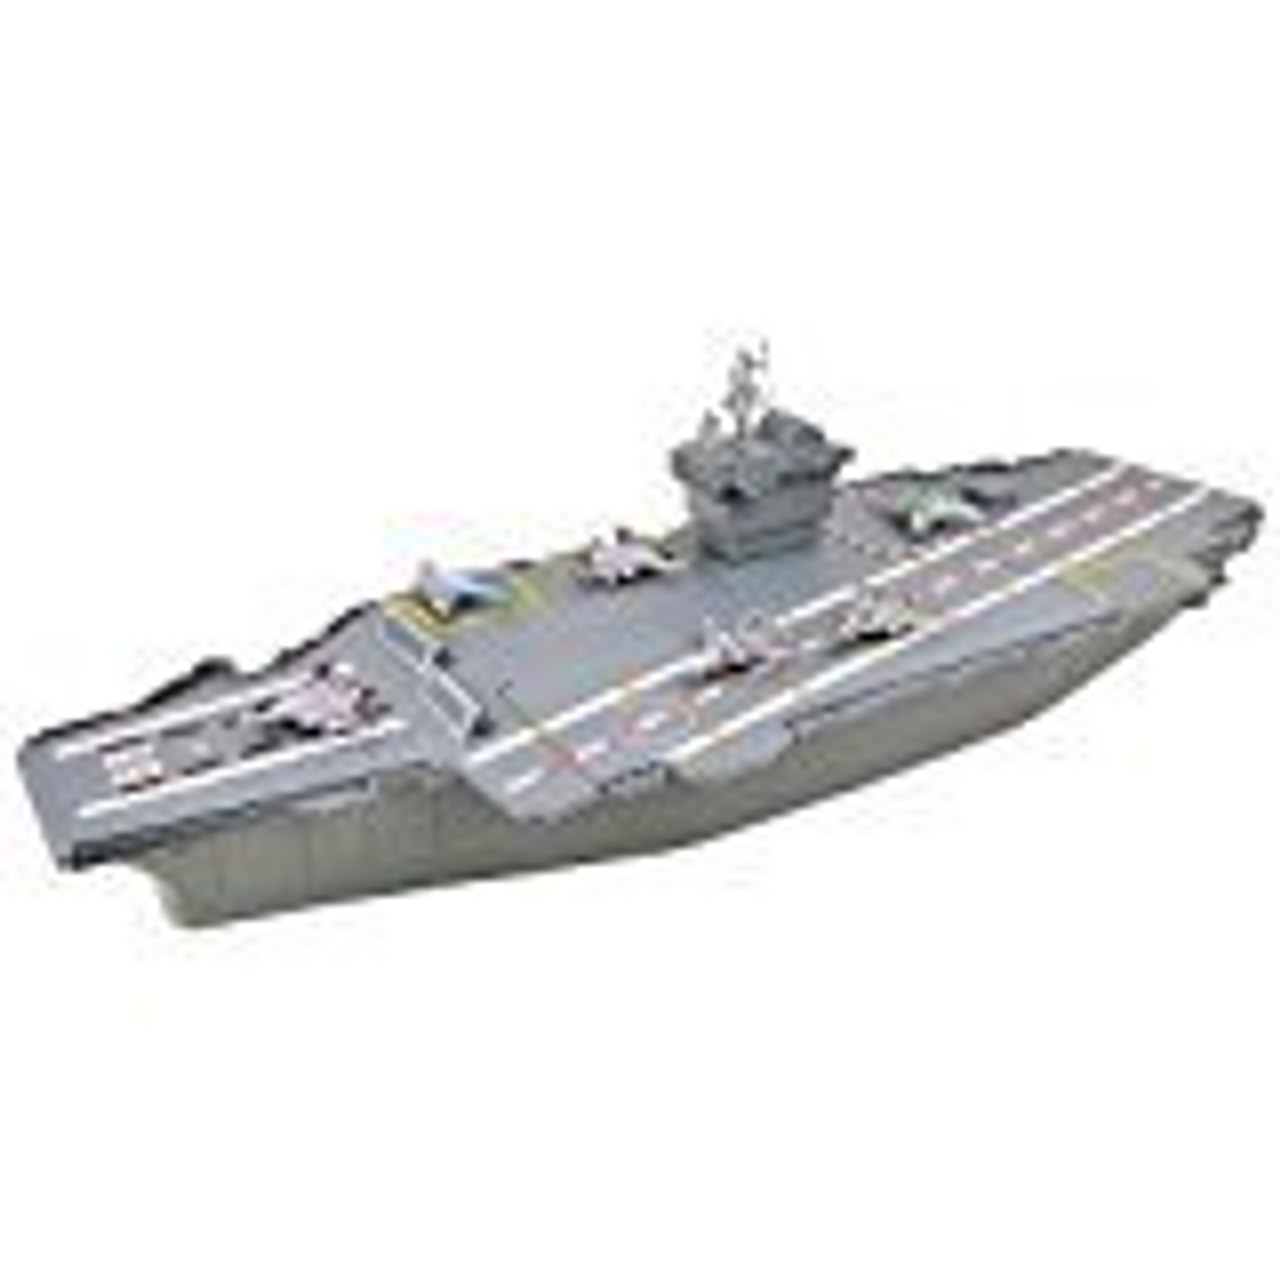 AIRCRAFT CARRIER WITH SOUND